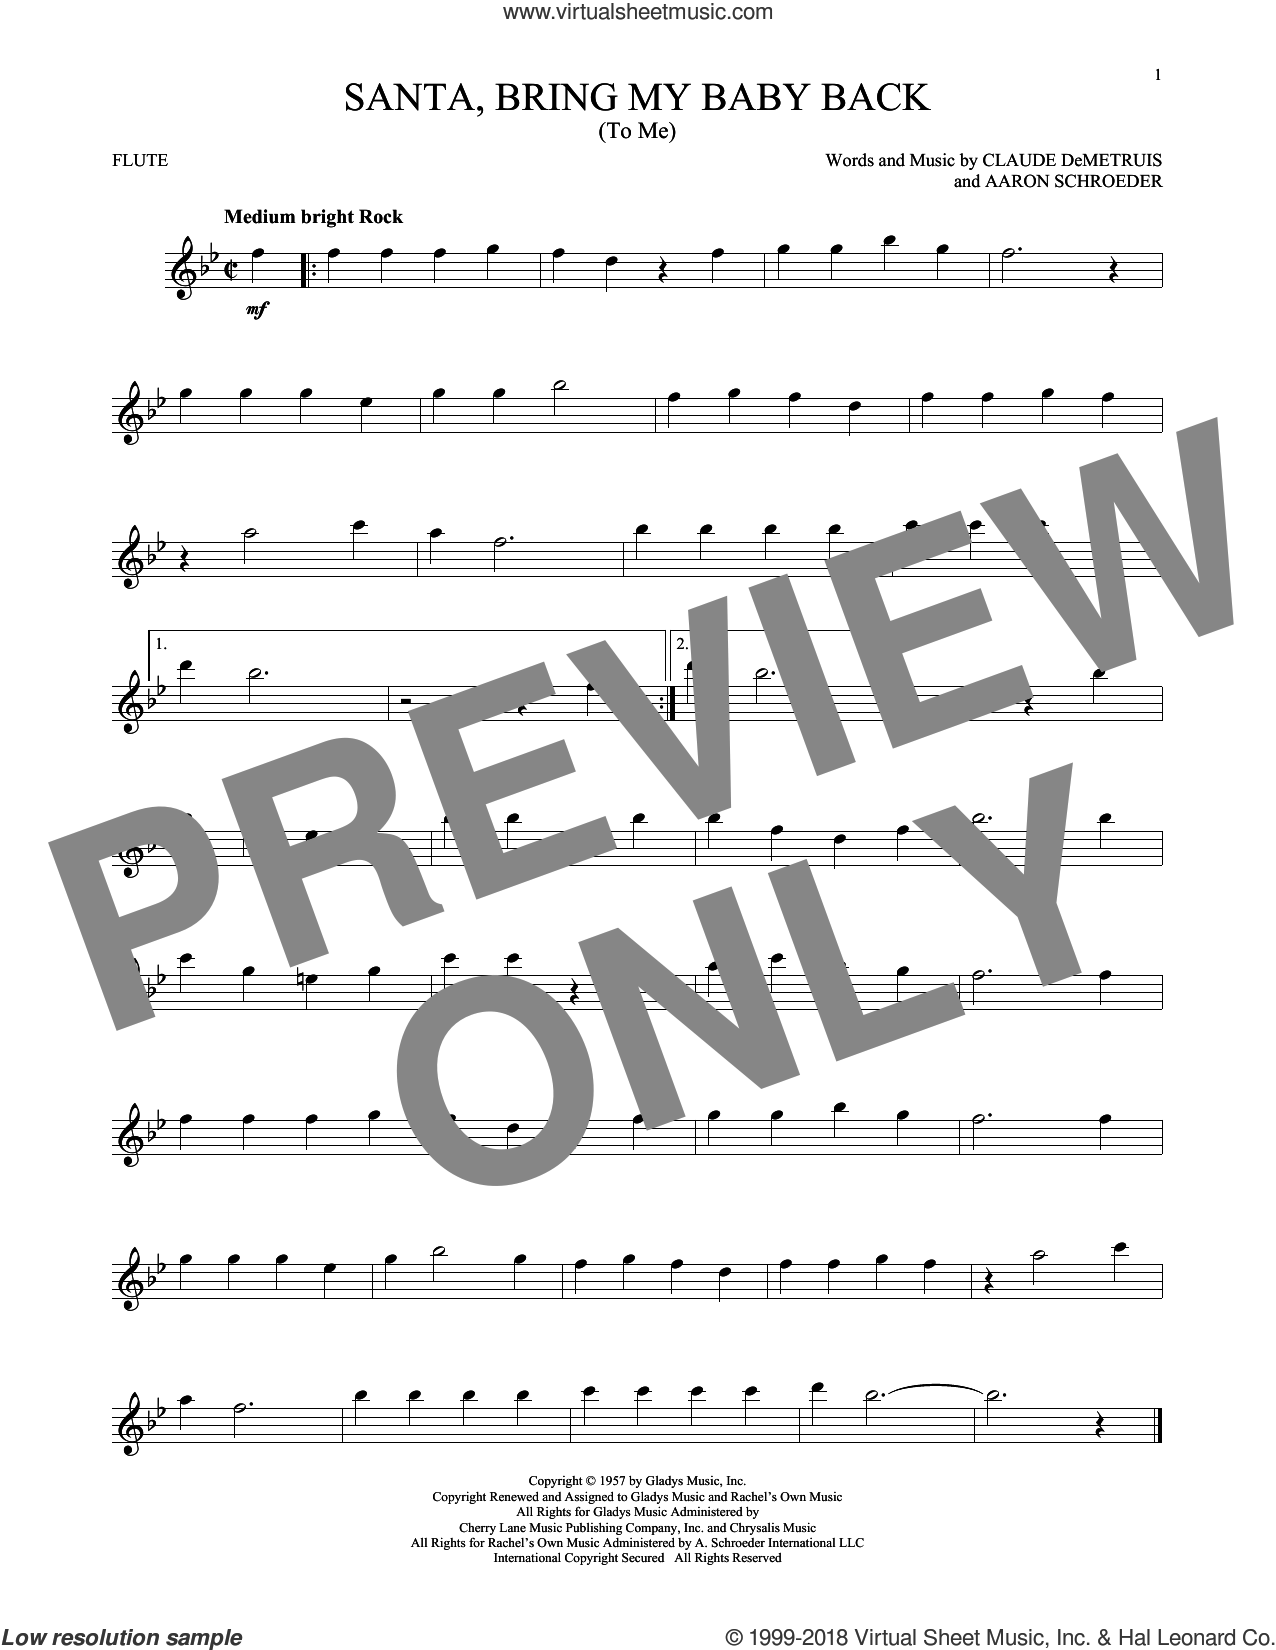 Santa, Bring My Baby Back (To Me) sheet music for flute solo by Elvis Presley, Aaron Schroeder and Claude DeMetruis, intermediate